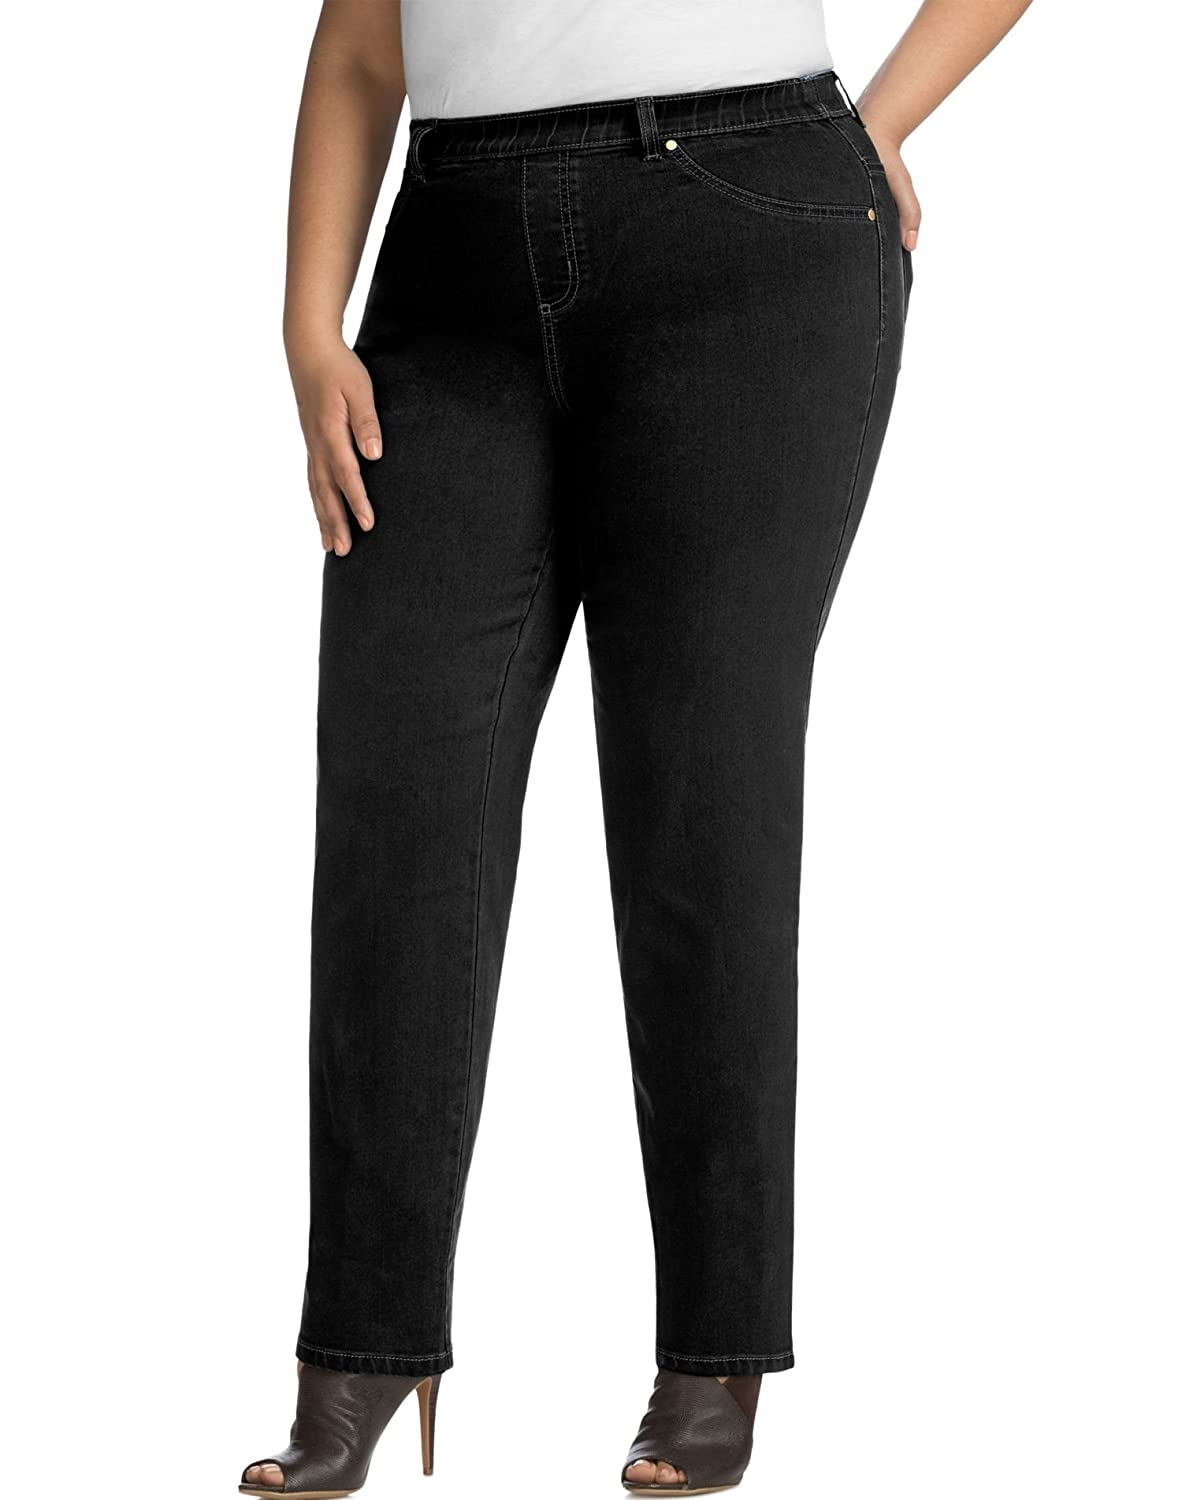 Just My Size Women's Apparel Womens Plus-Size Plus Size Stretch Denim Jegging 0318